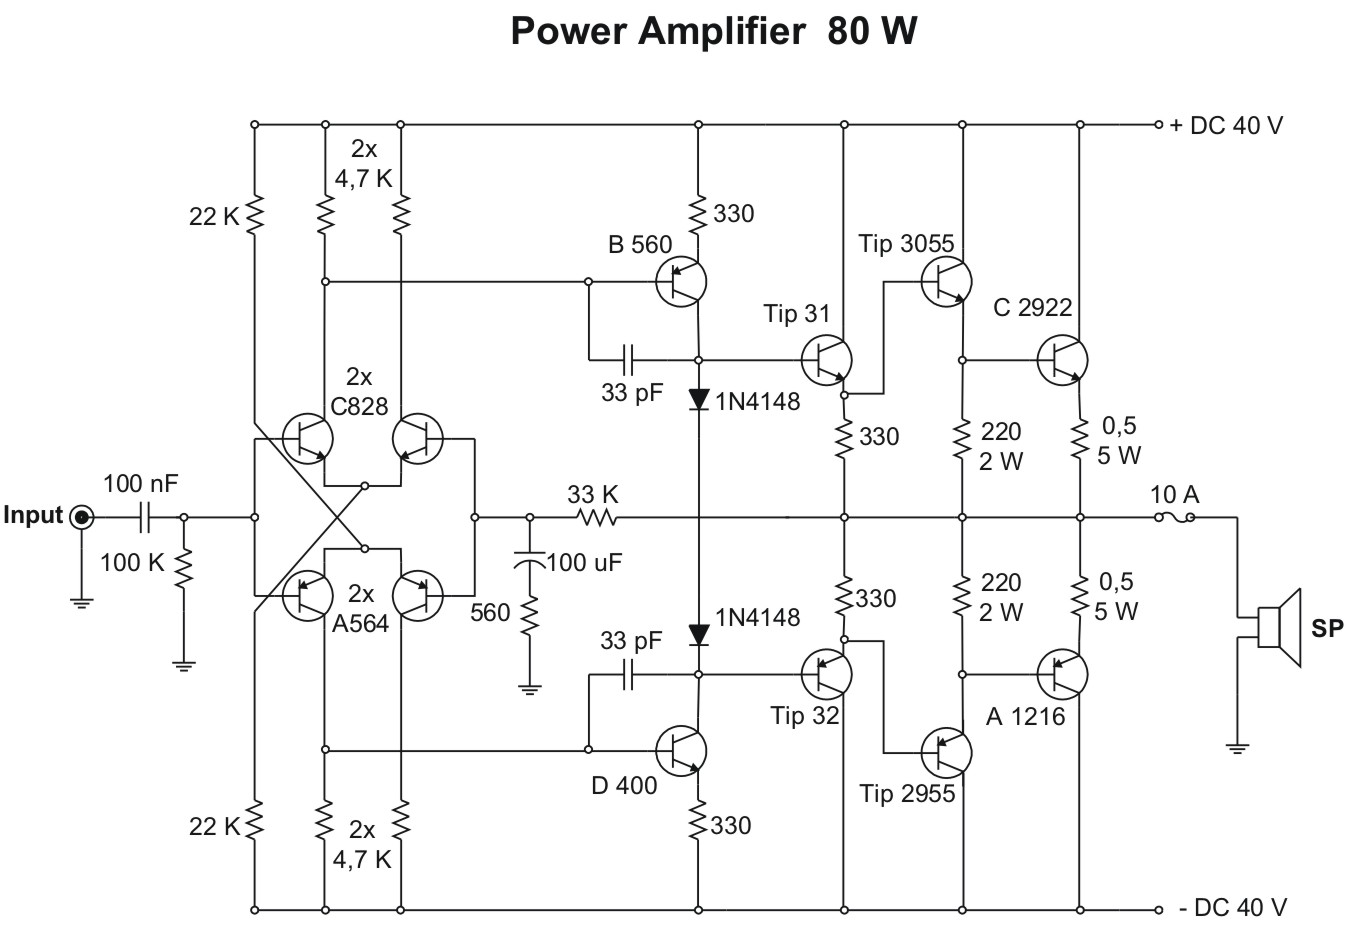 speaker wiring diagram 6 ohm 12v bathroom extractor fan skema power amplifier